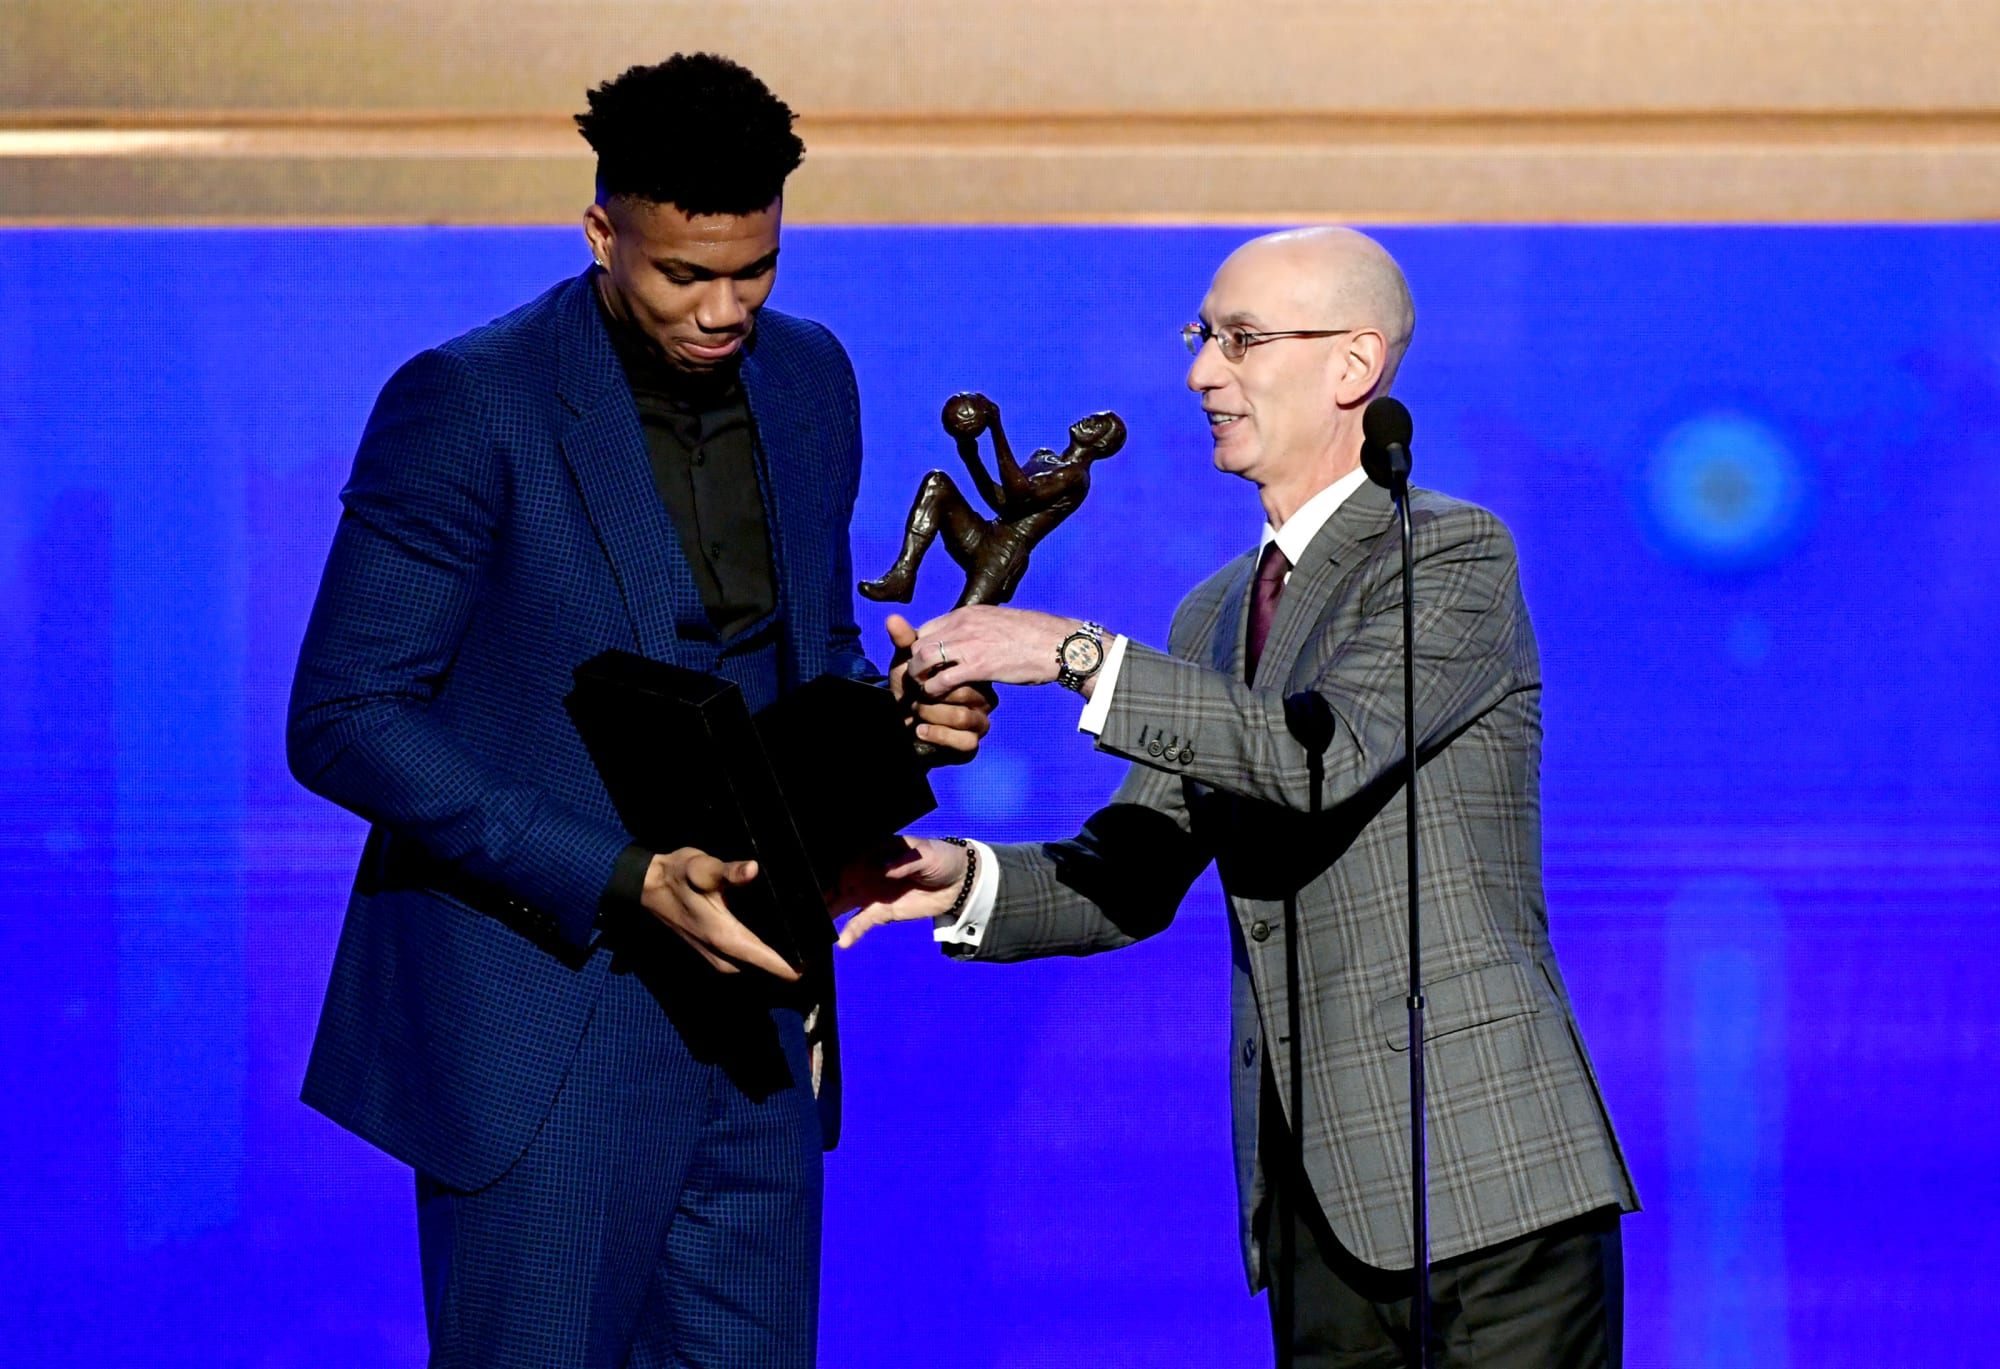 Giannis Antetokounmpo named 2019-20 NBA Most Valuable Player